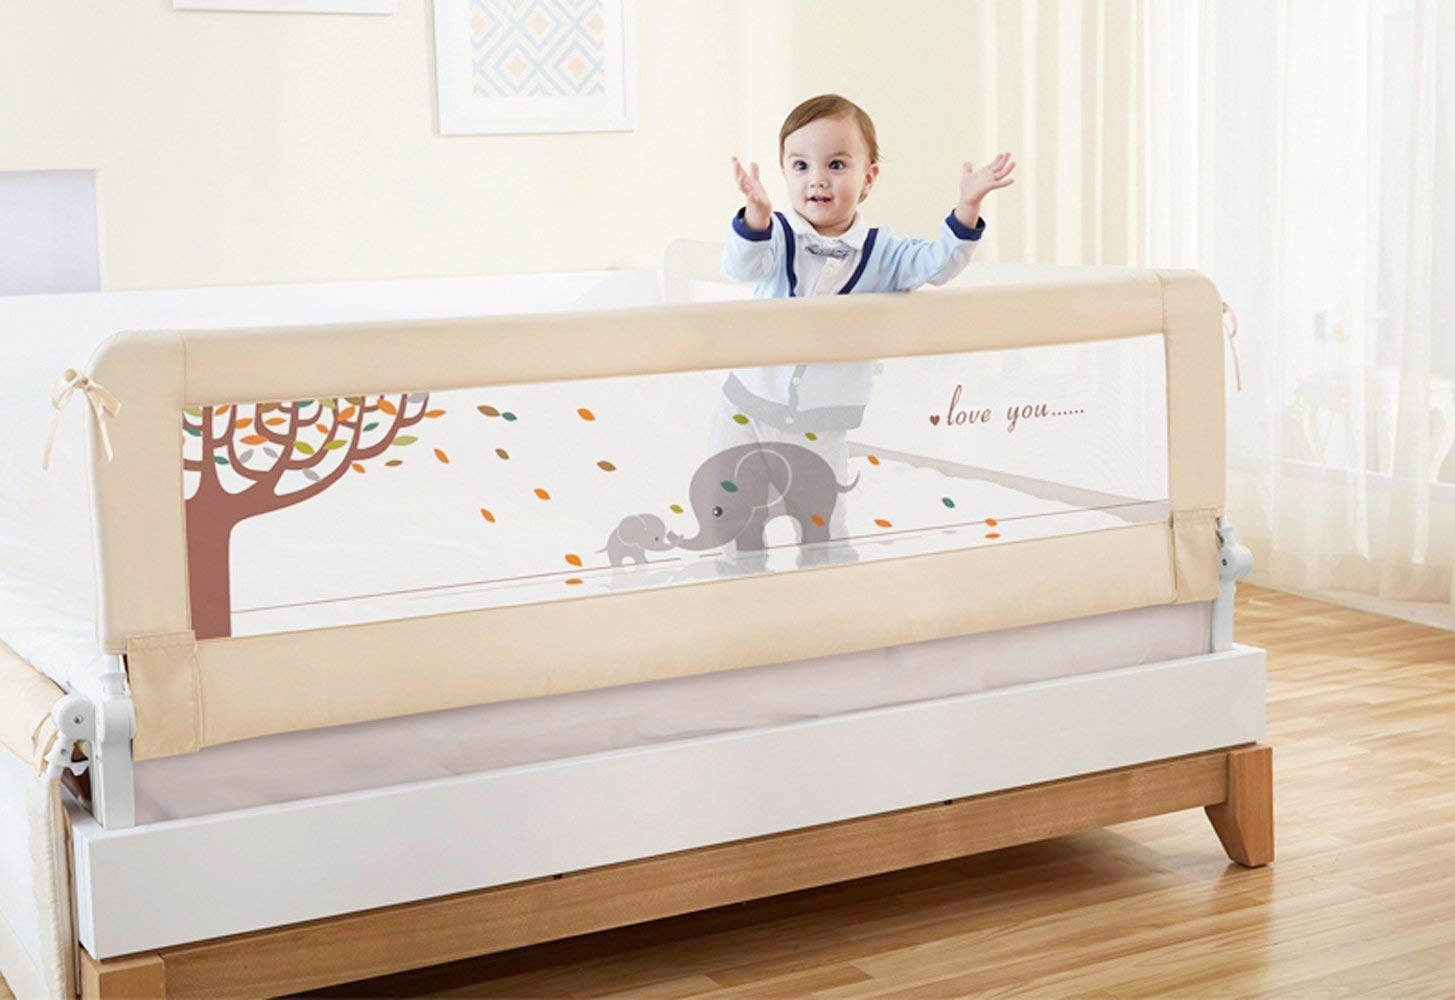 BABY BBZ 59inch Bed Rail - Single Foldable Safety Bedrail with Ventilated Mesh